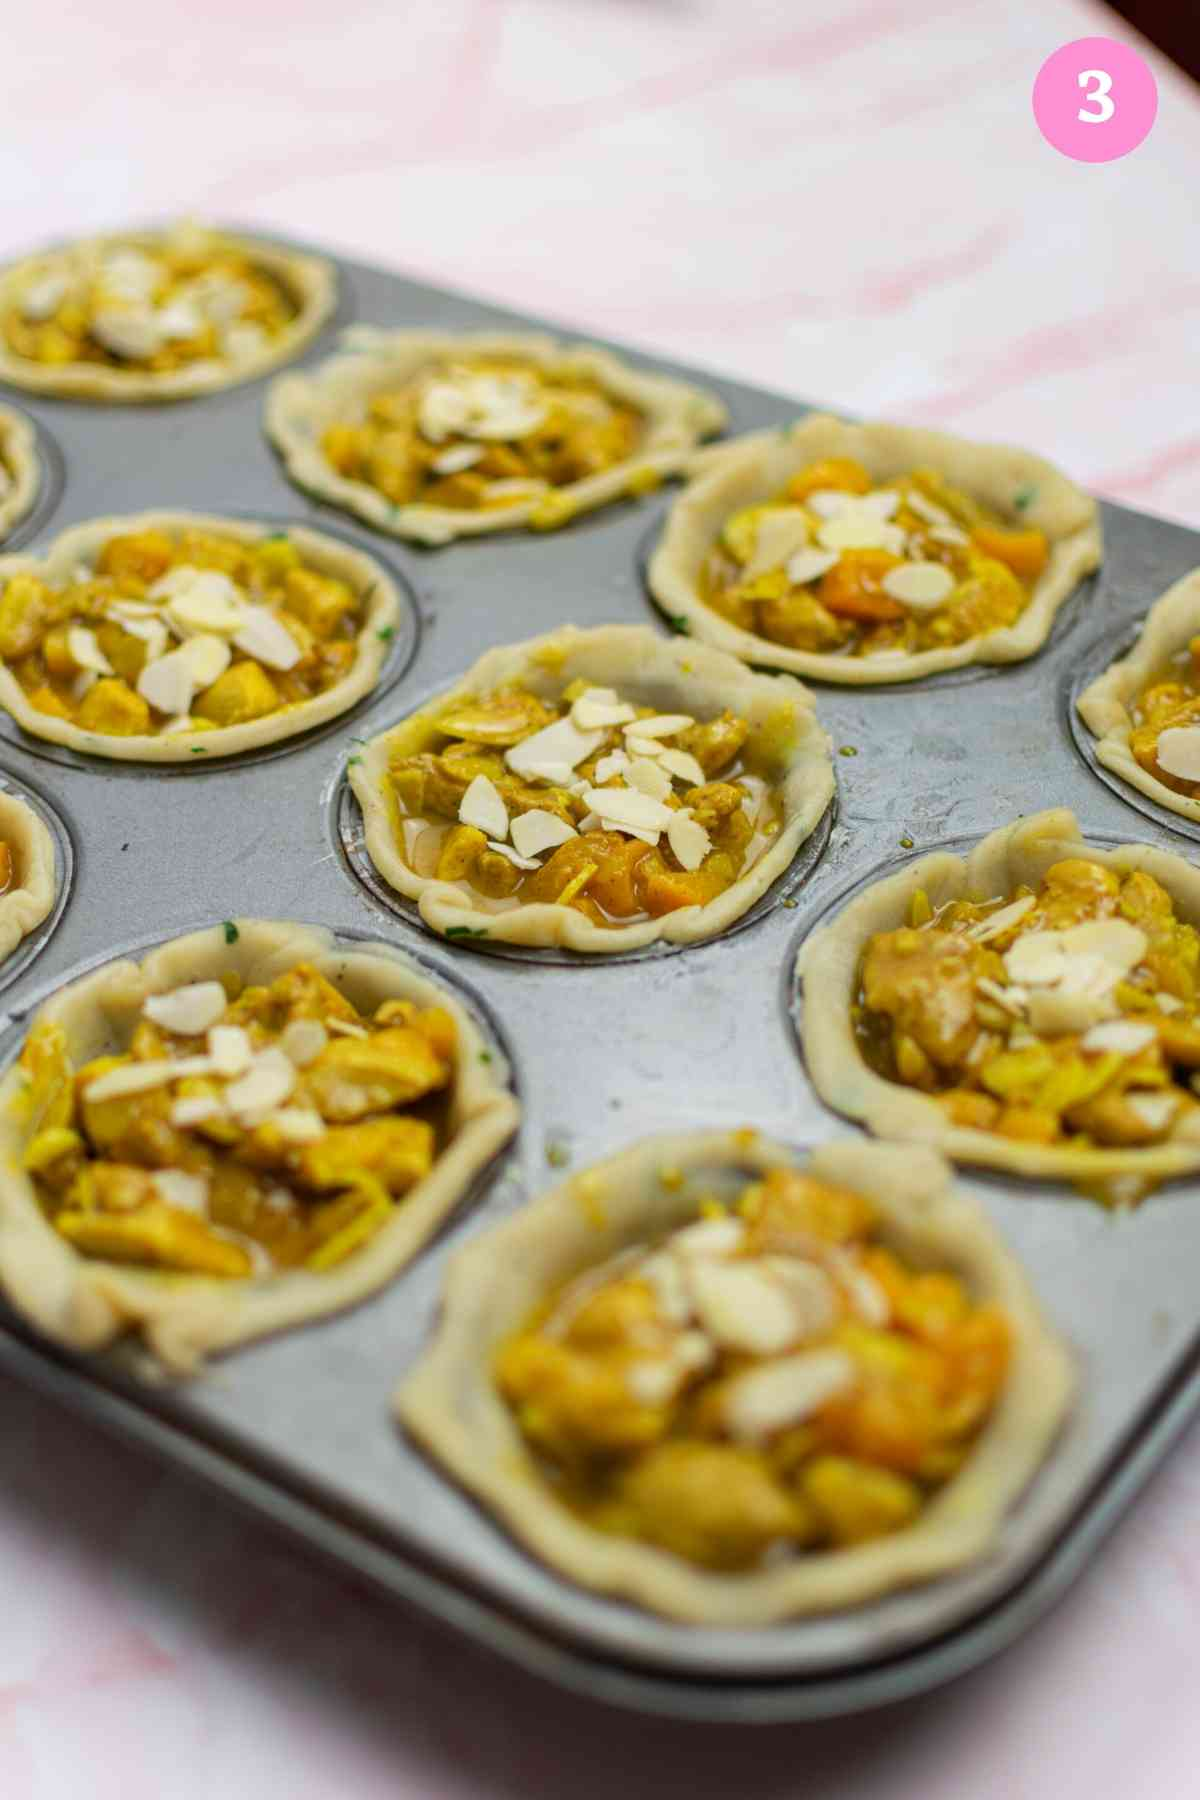 Pie bases filled with chicken tagine with apricot filling